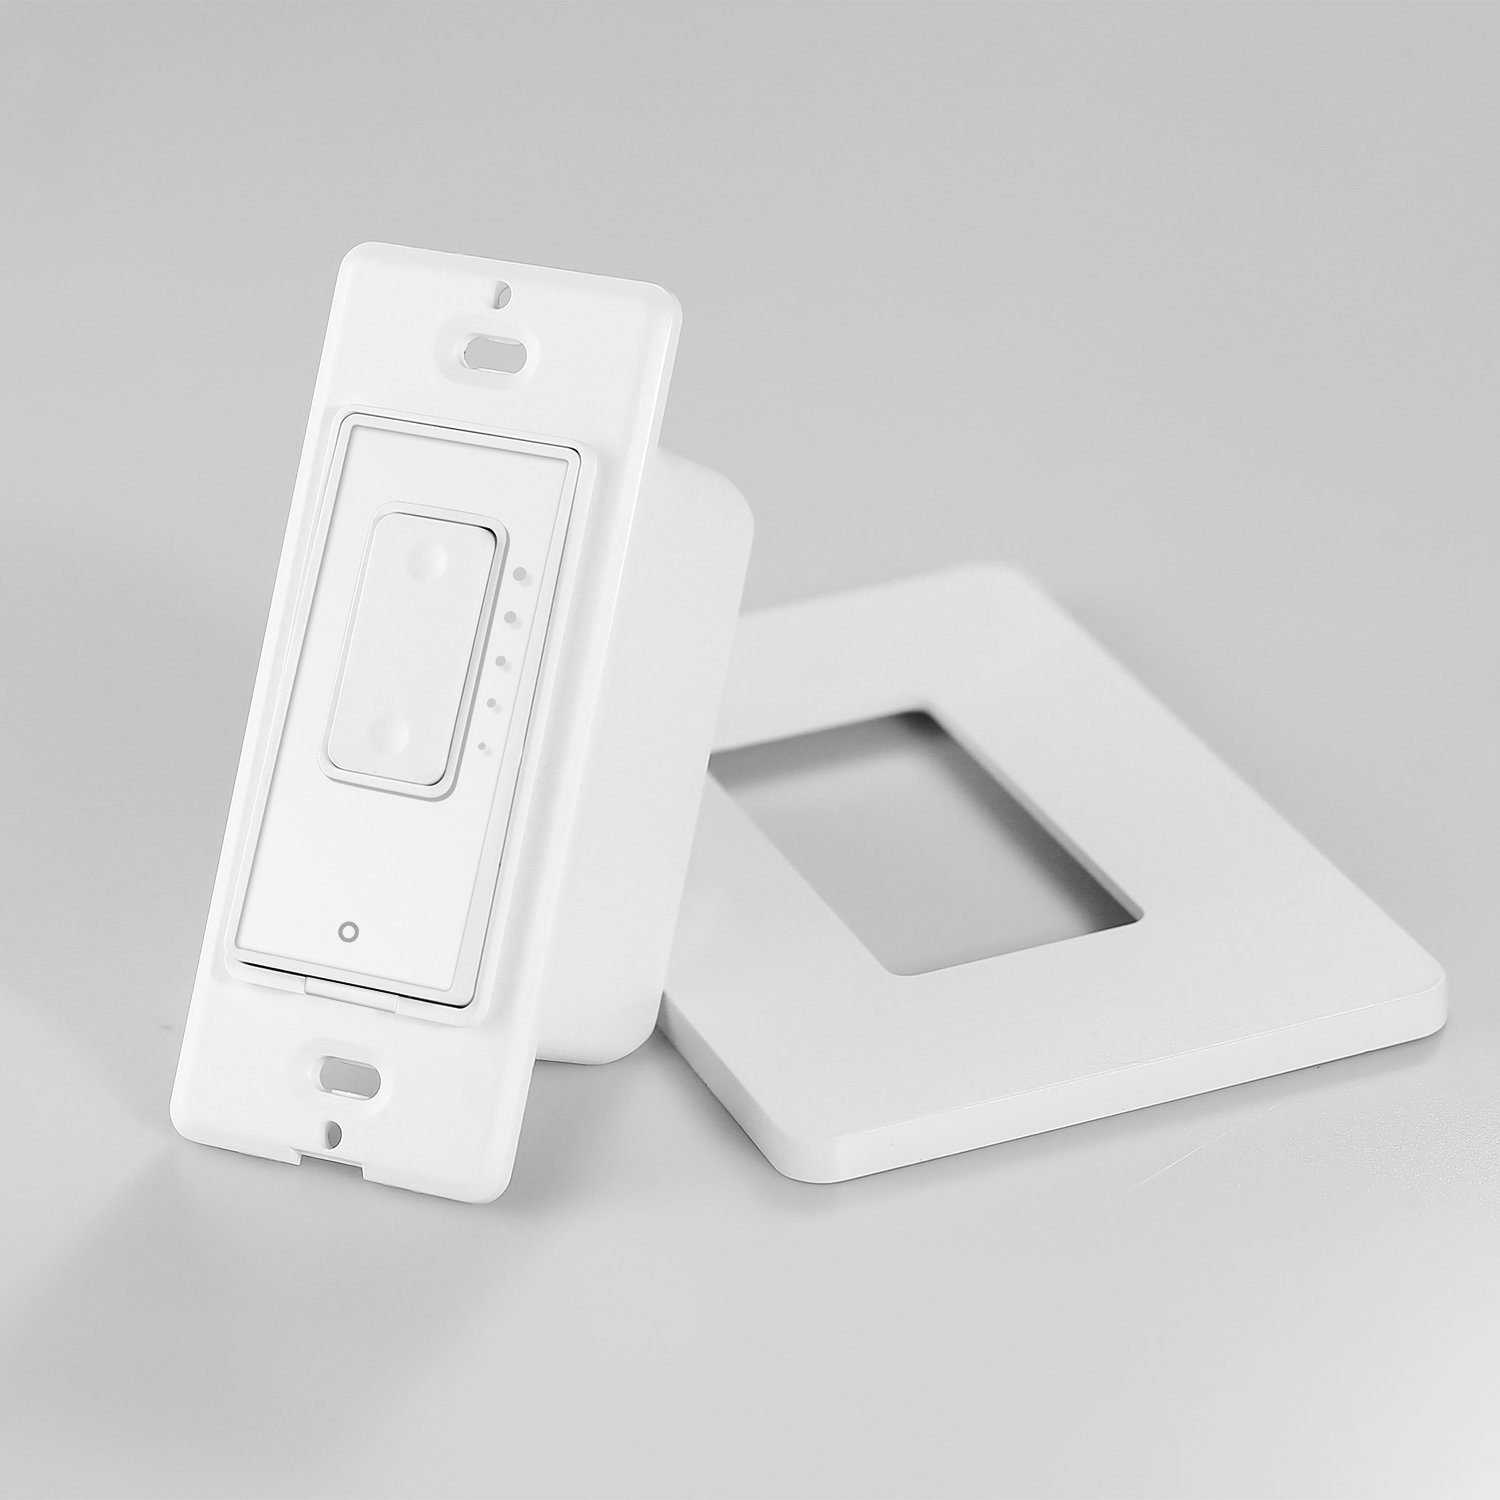 Smart Dimmer Switch by Martin Jerry | SmartLife App, Mains Dimming ONLY, Compatible with Alexa as WiFi Light Switch Dimmer, Single Pole, Works with Google Assistant [For Sale NOW] by Martin Jerry (Image #2)